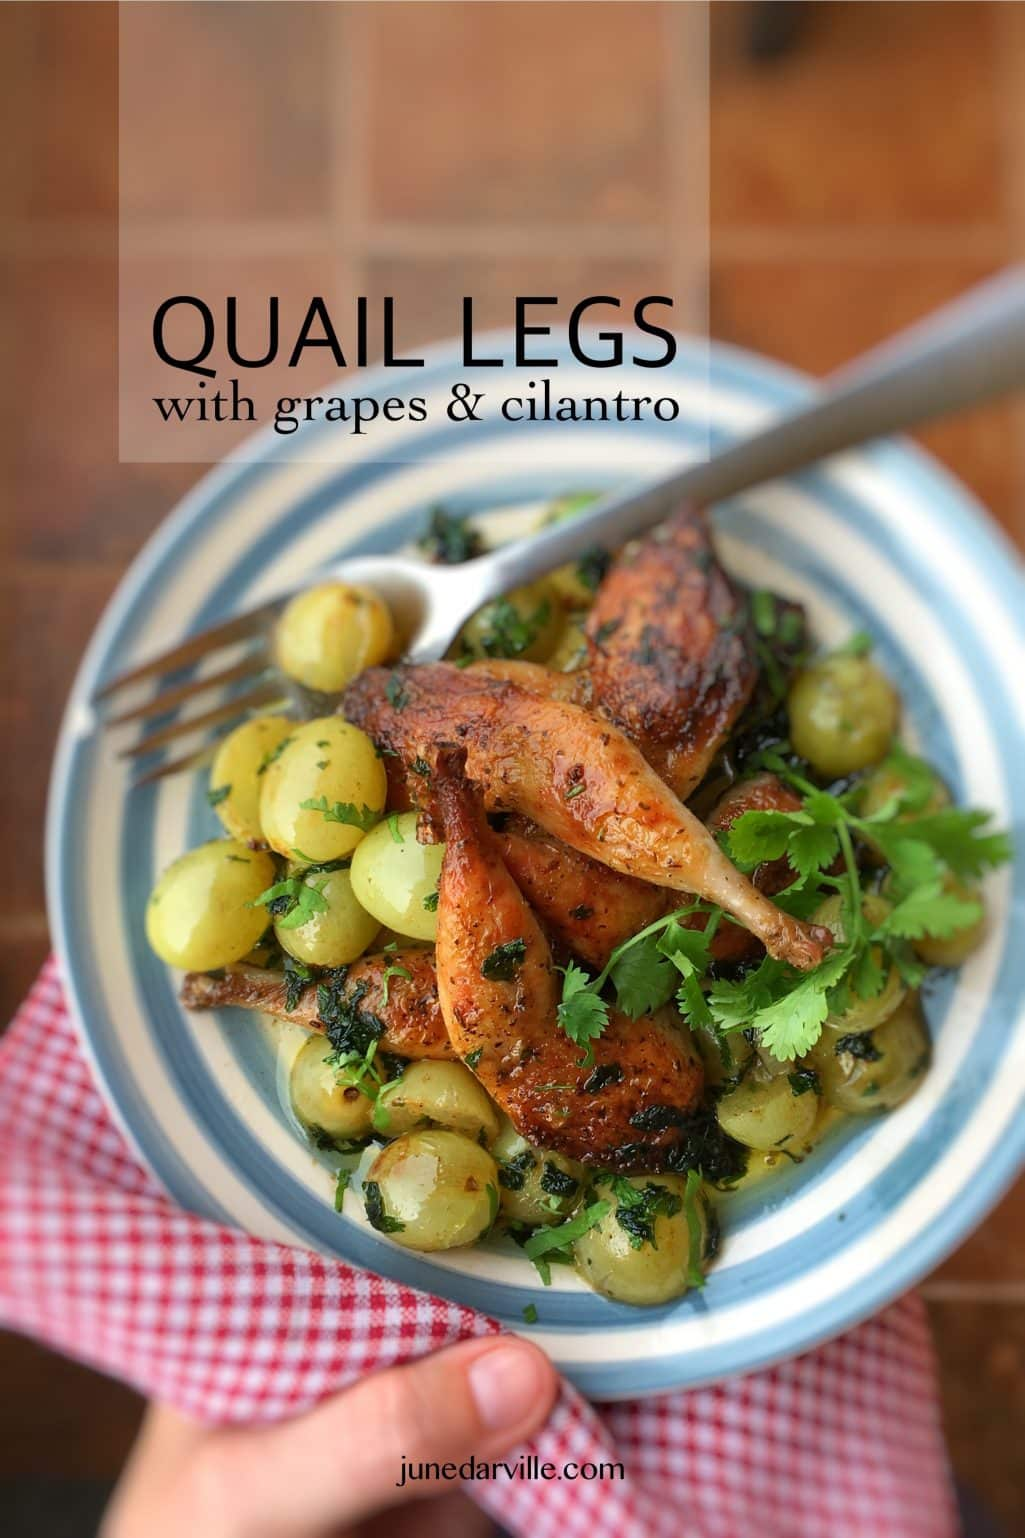 Quail with grapes or cailles aux raisins, a classic French recipe and a most surprising flavor combination! You will love this one...